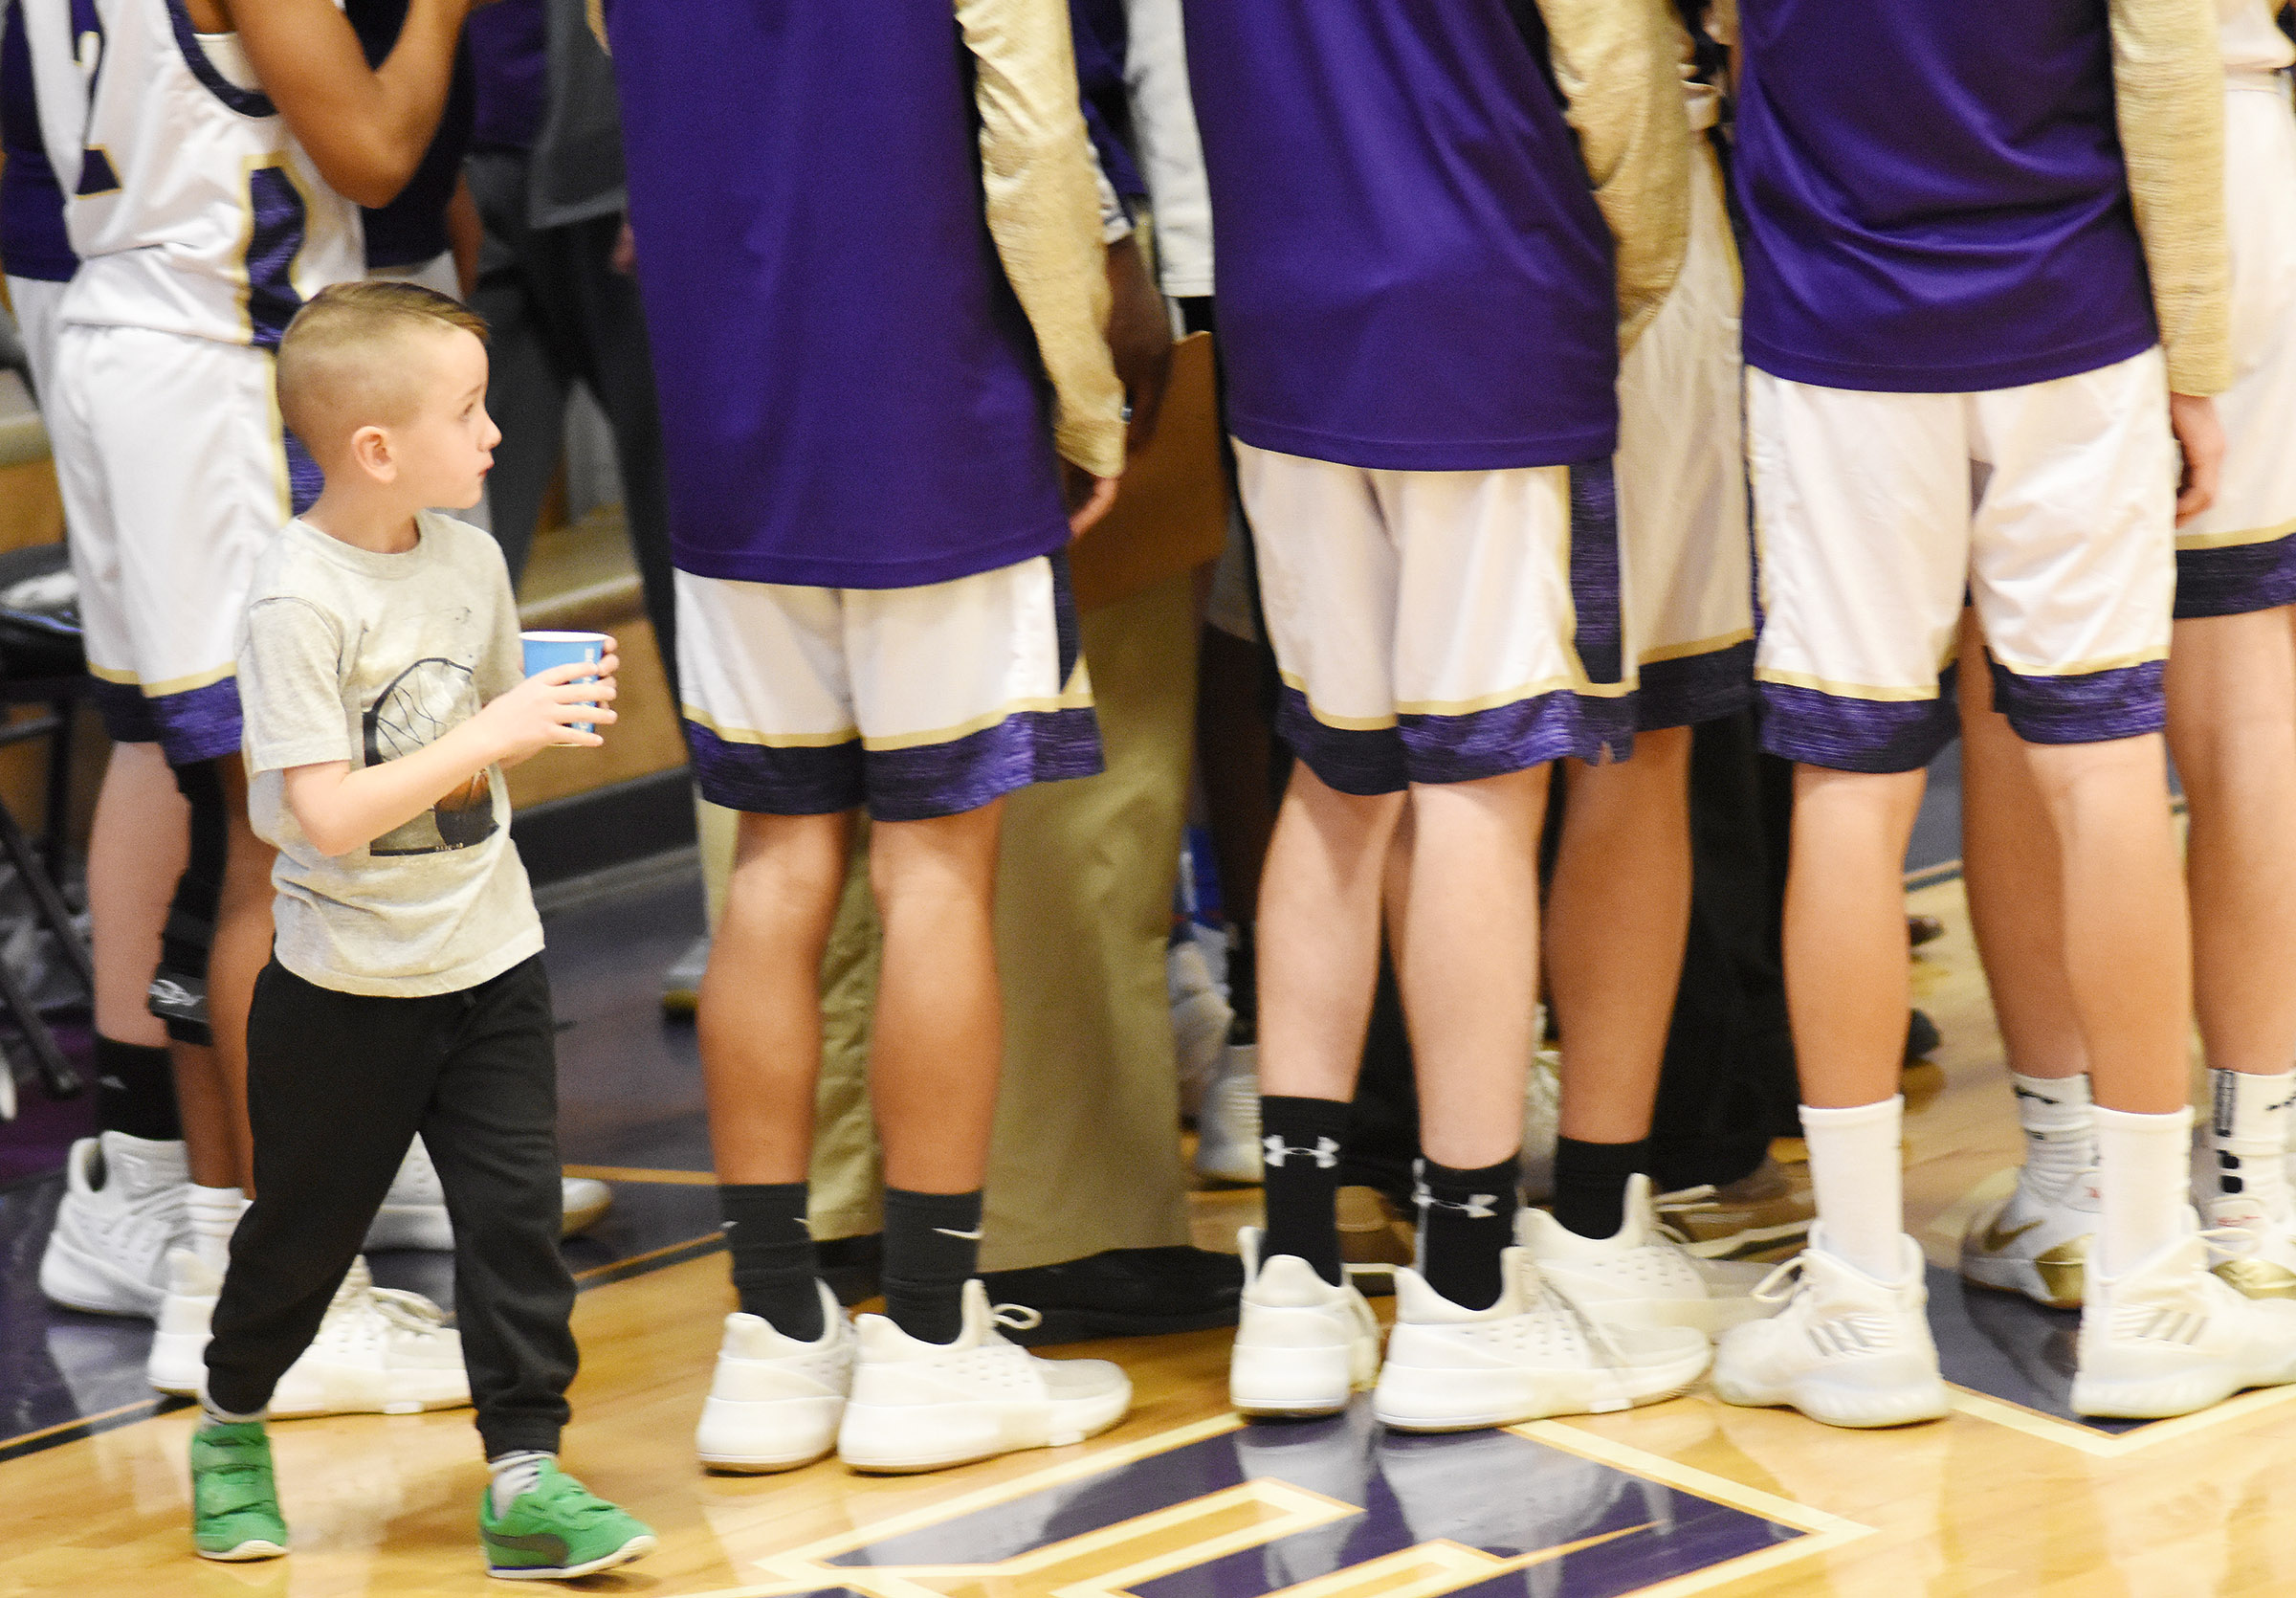 Campbellsville Elementary School kindergartener Cash Davis delivers water to the players.